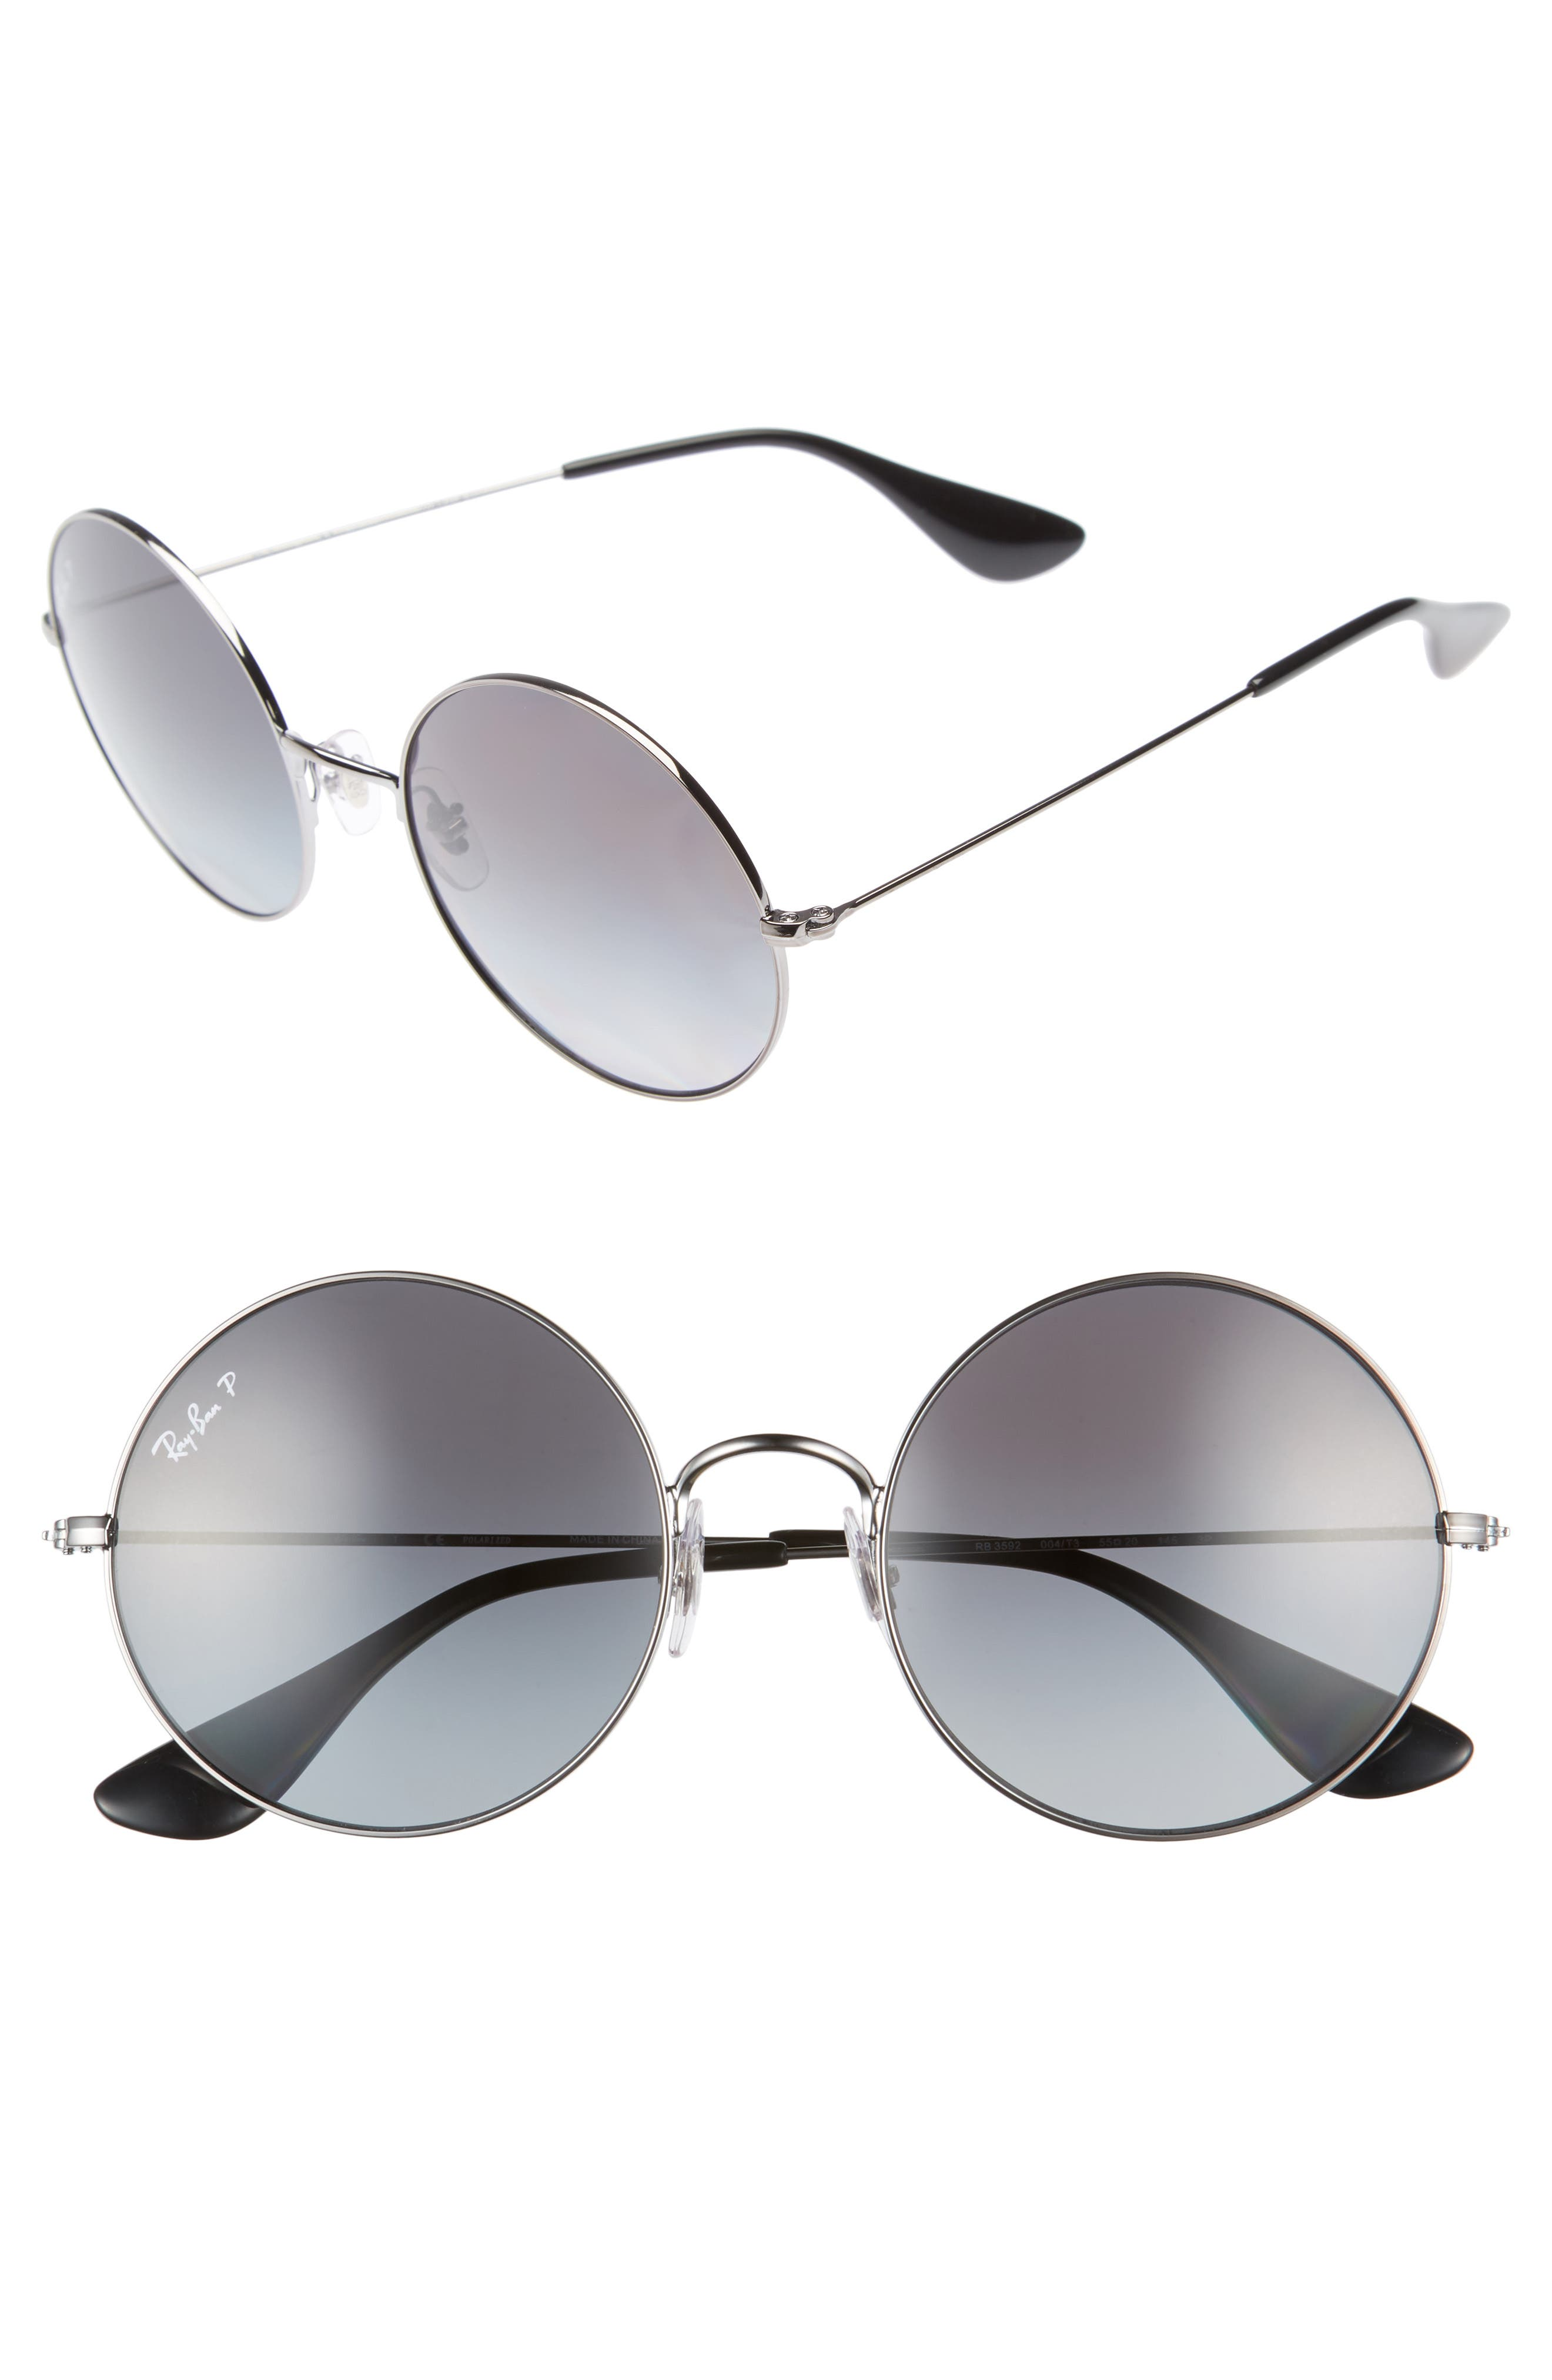 Ray-Ban 55mm Polarized Round Sunglasses